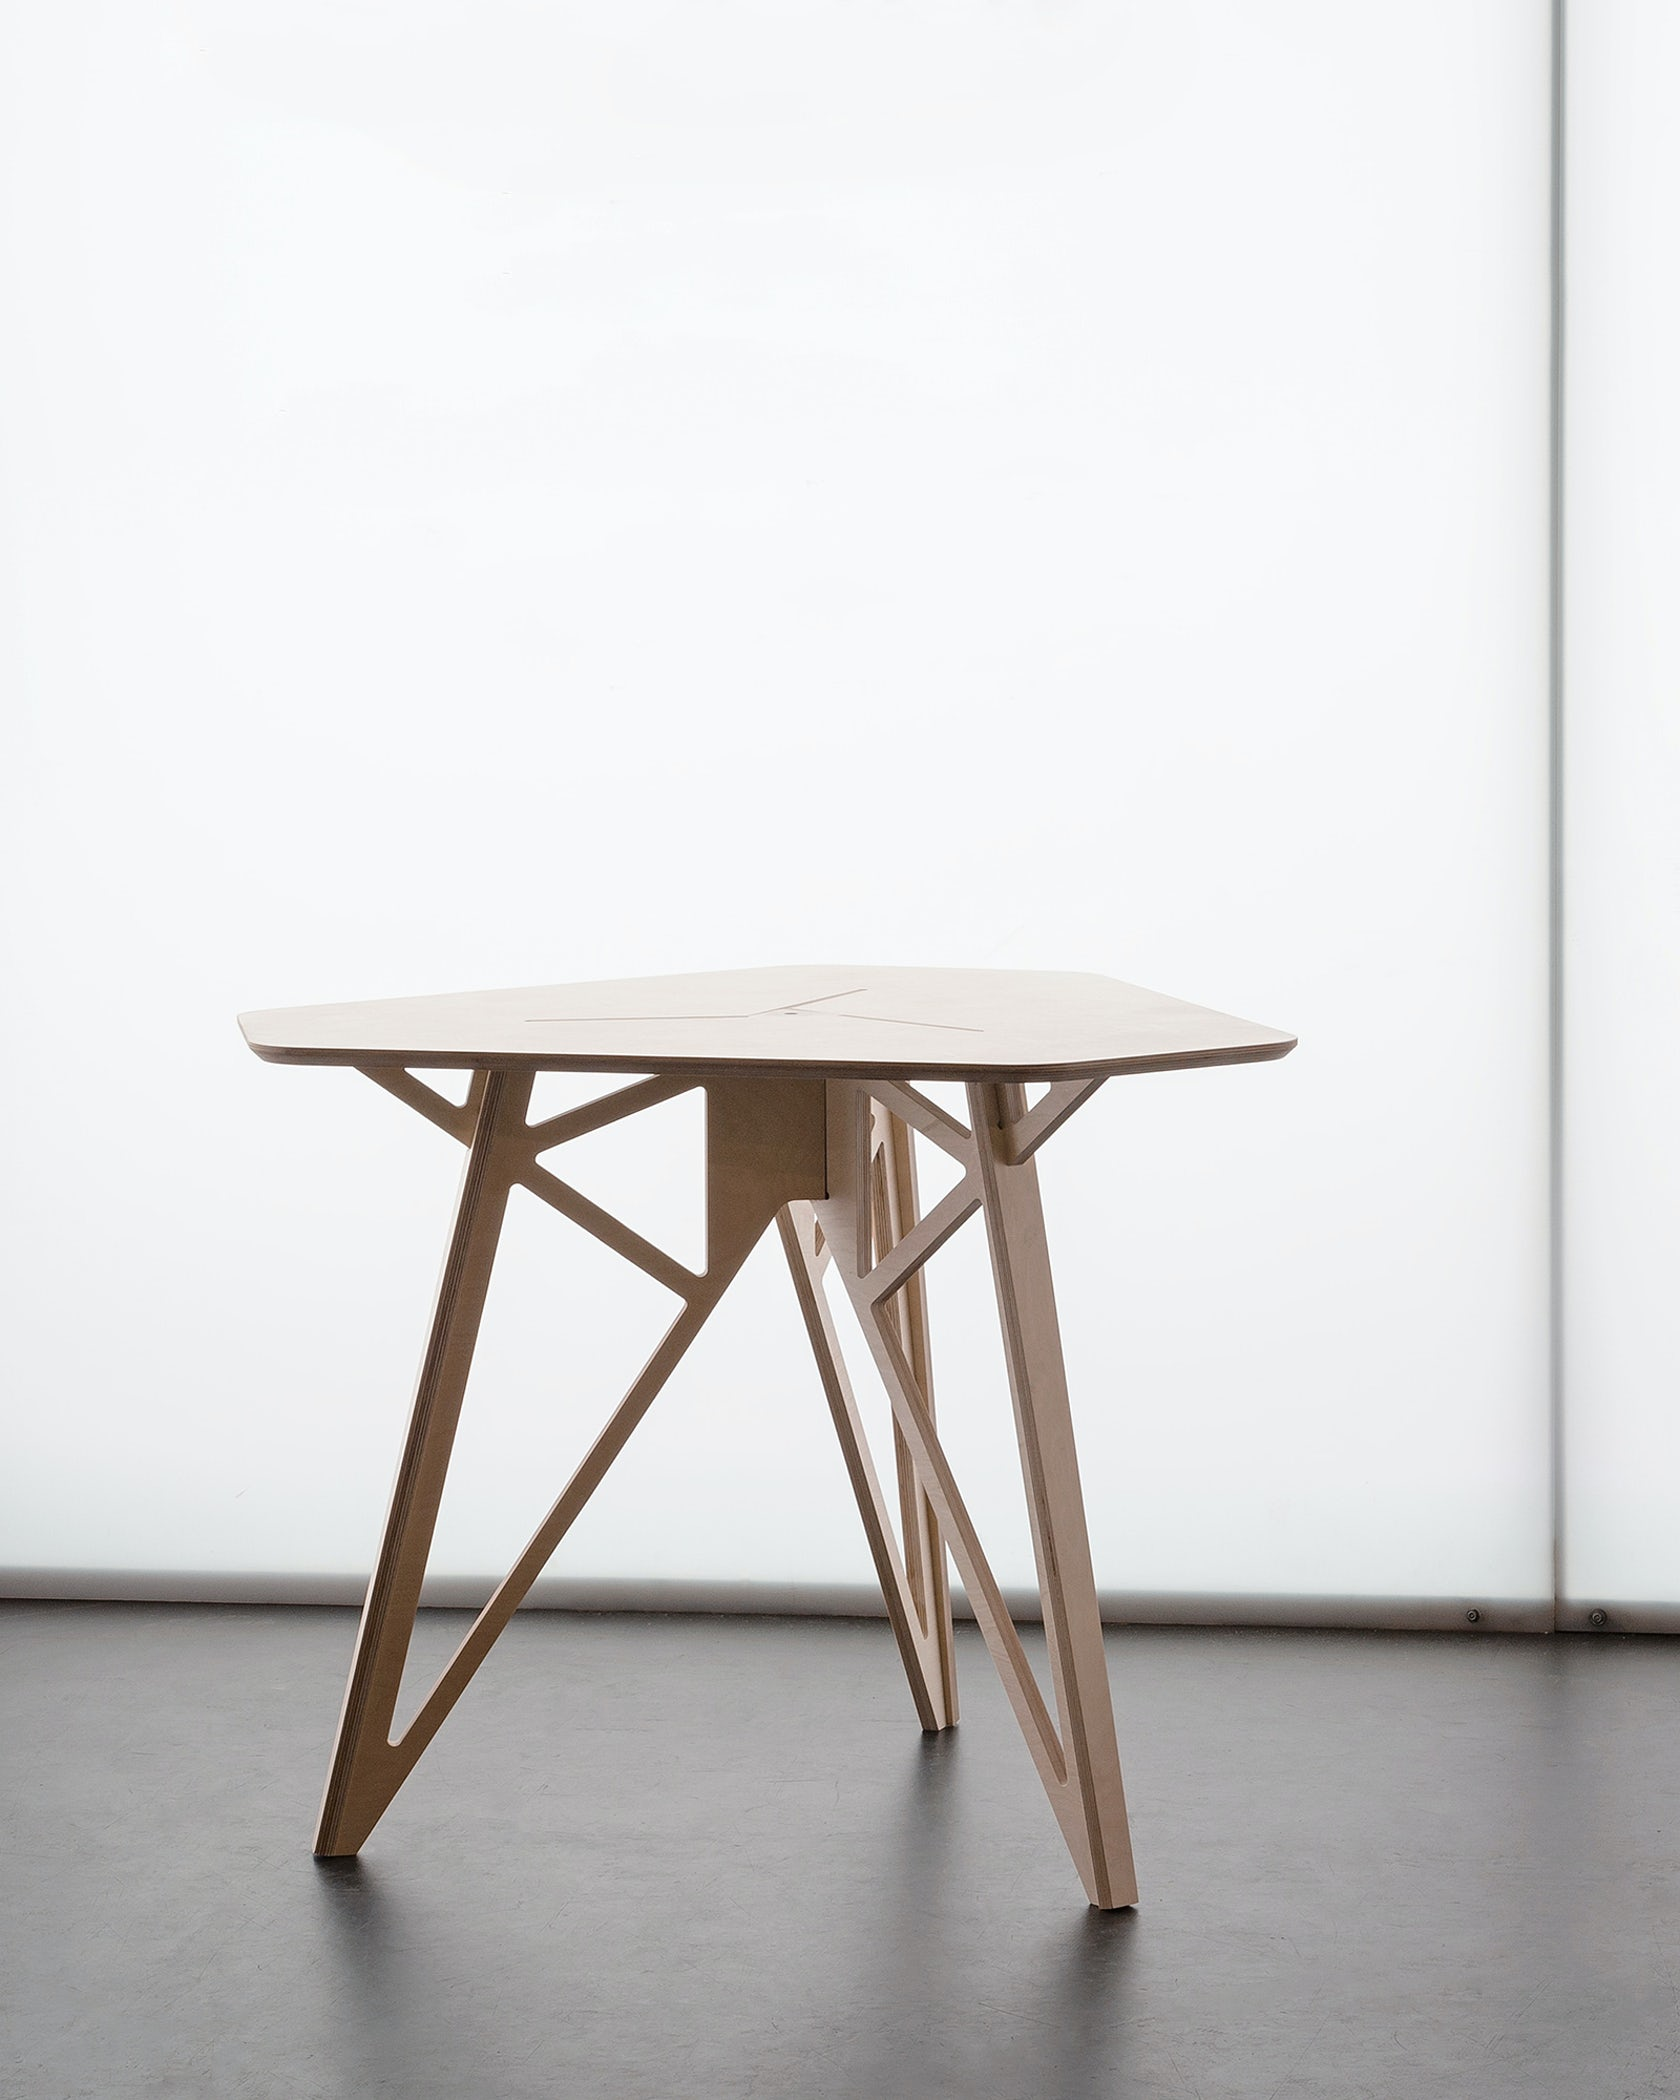 Half sheet table architizer for Table sheet design